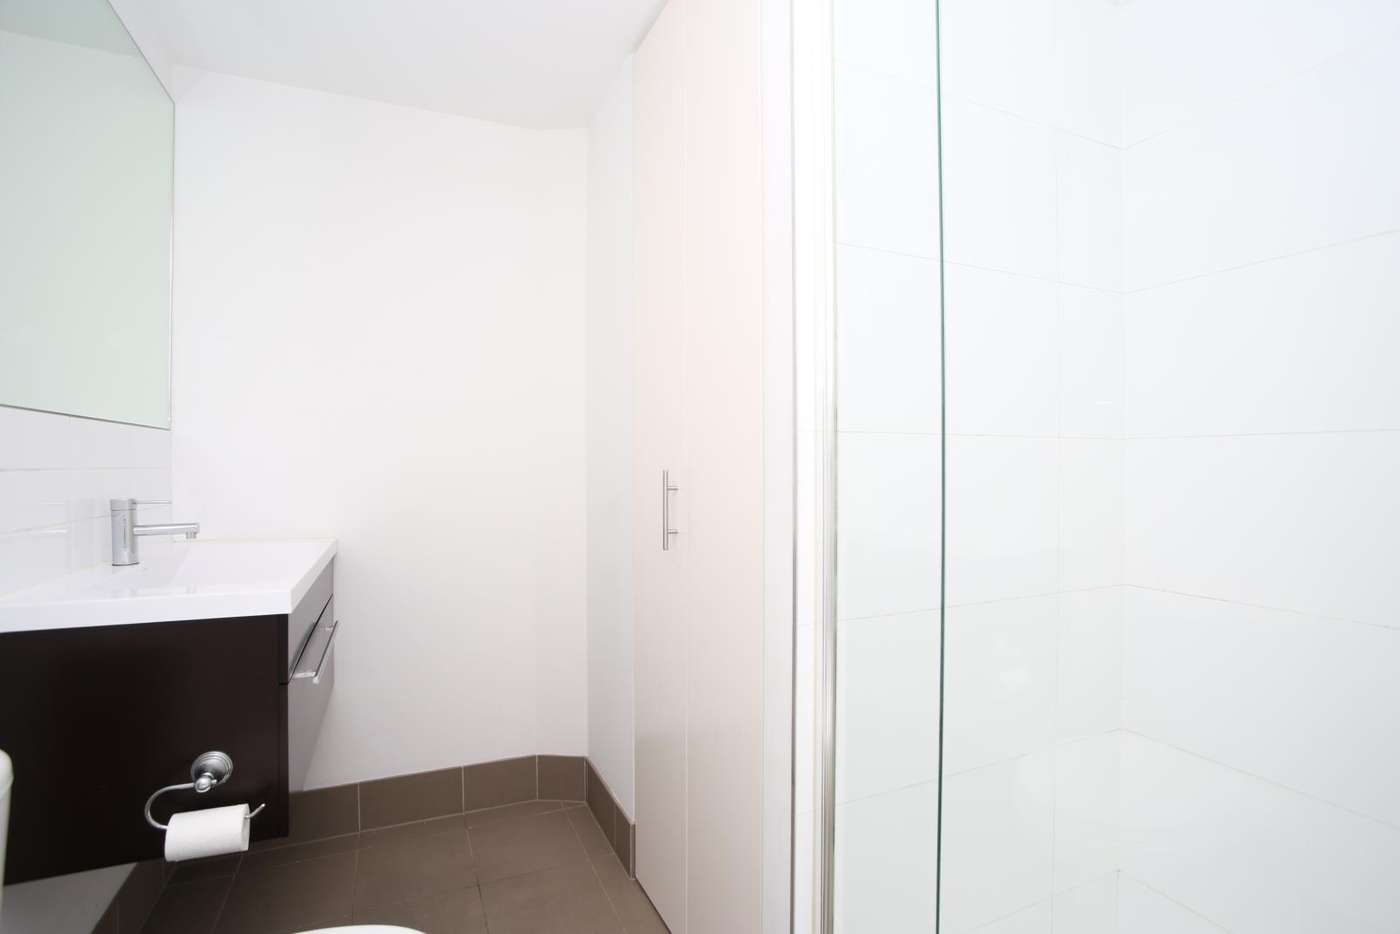 Sixth view of Homely apartment listing, 3203/109 Clarendon Street, Southbank VIC 3006